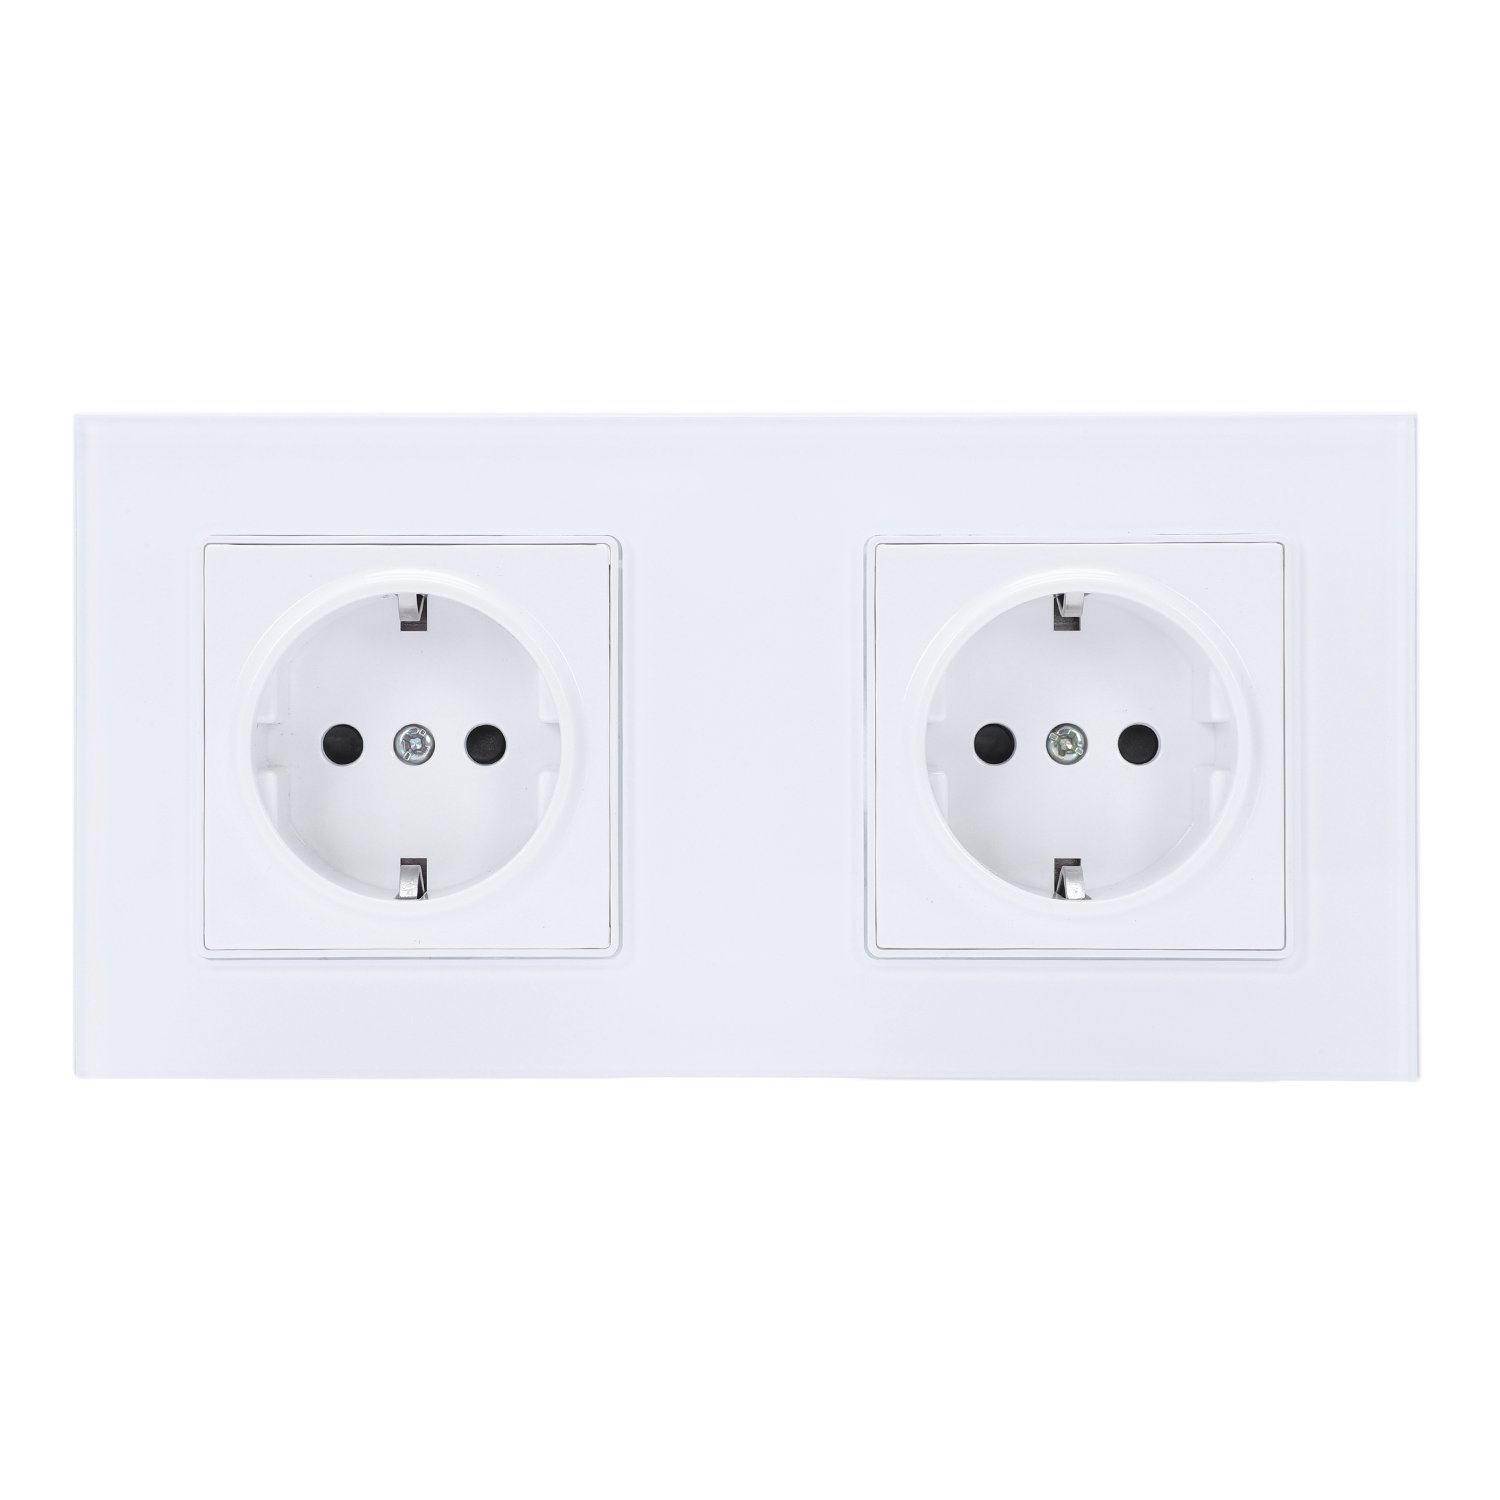 SNNY-Eu Standard Wall Power Socket,Crystal Glass Panel,Manufacturer Of 16A Wall OutletSNNY-Eu Standard Wall Power Socket,Crystal Glass Panel,Manufacturer Of 16A Wall Outlet